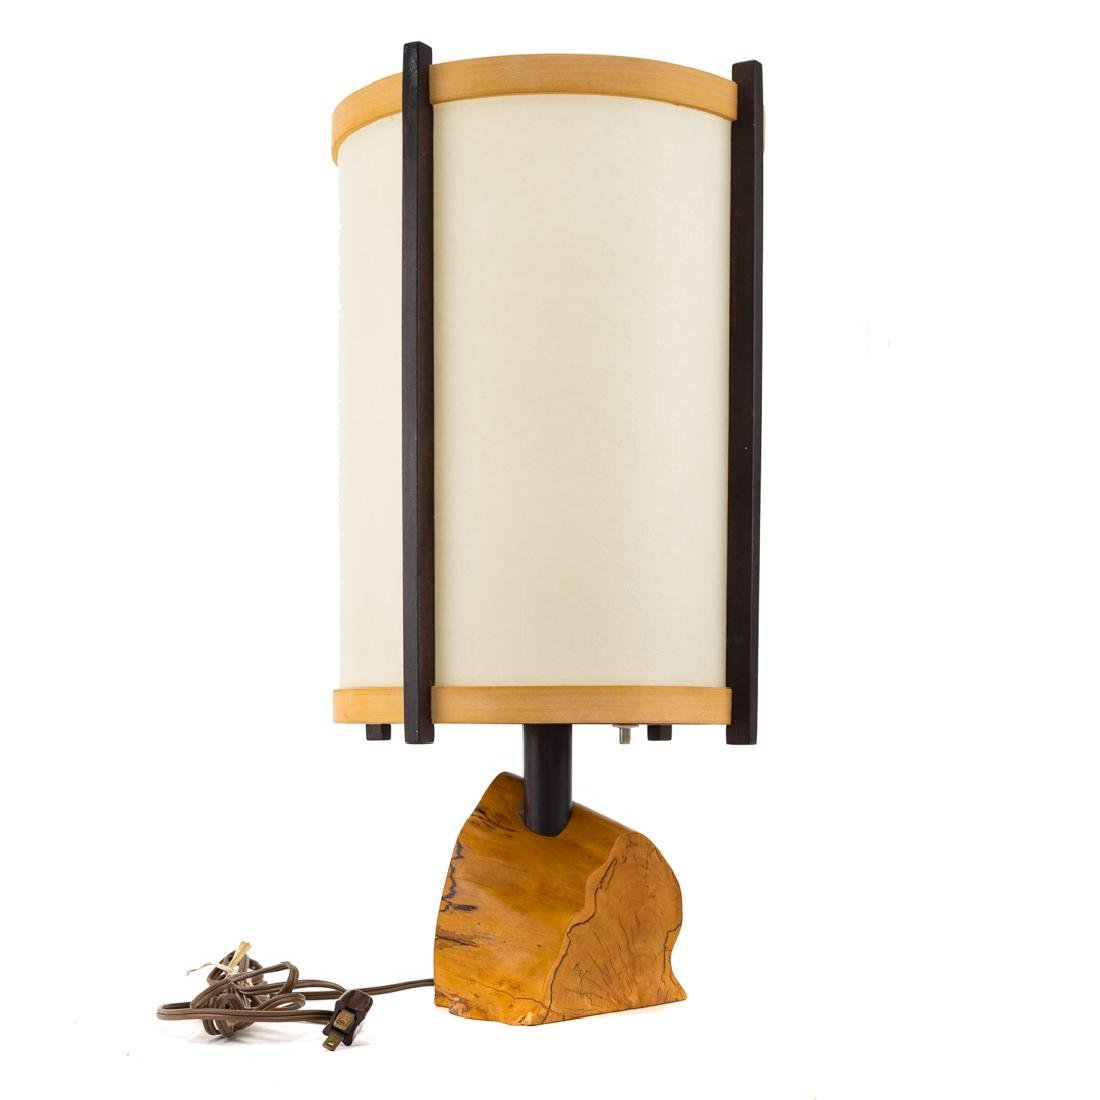 George Nakashima Desk Lamp - 6